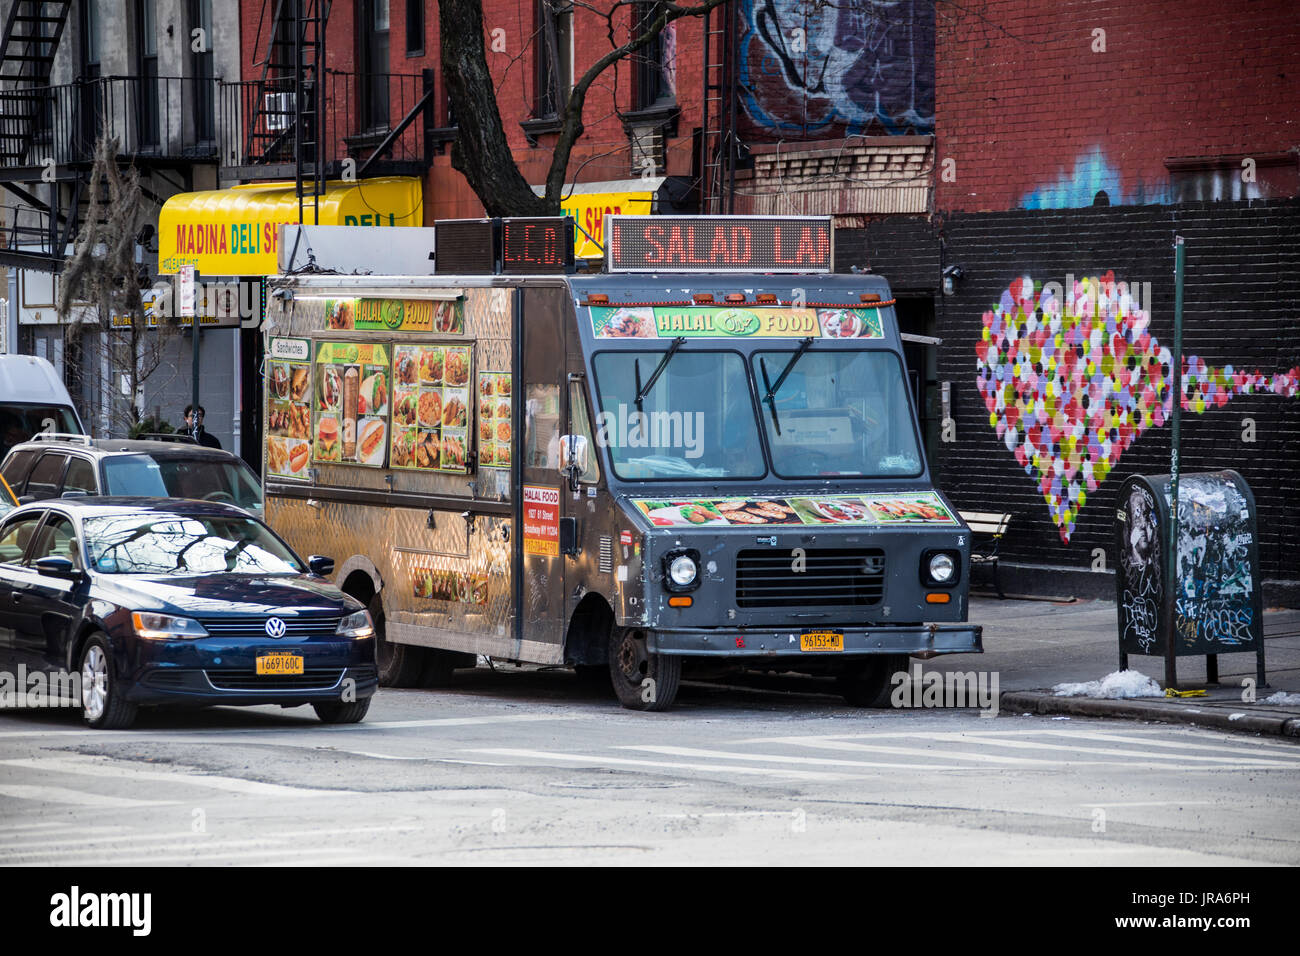 Halal food truck in the East Village, New York CIty, USA